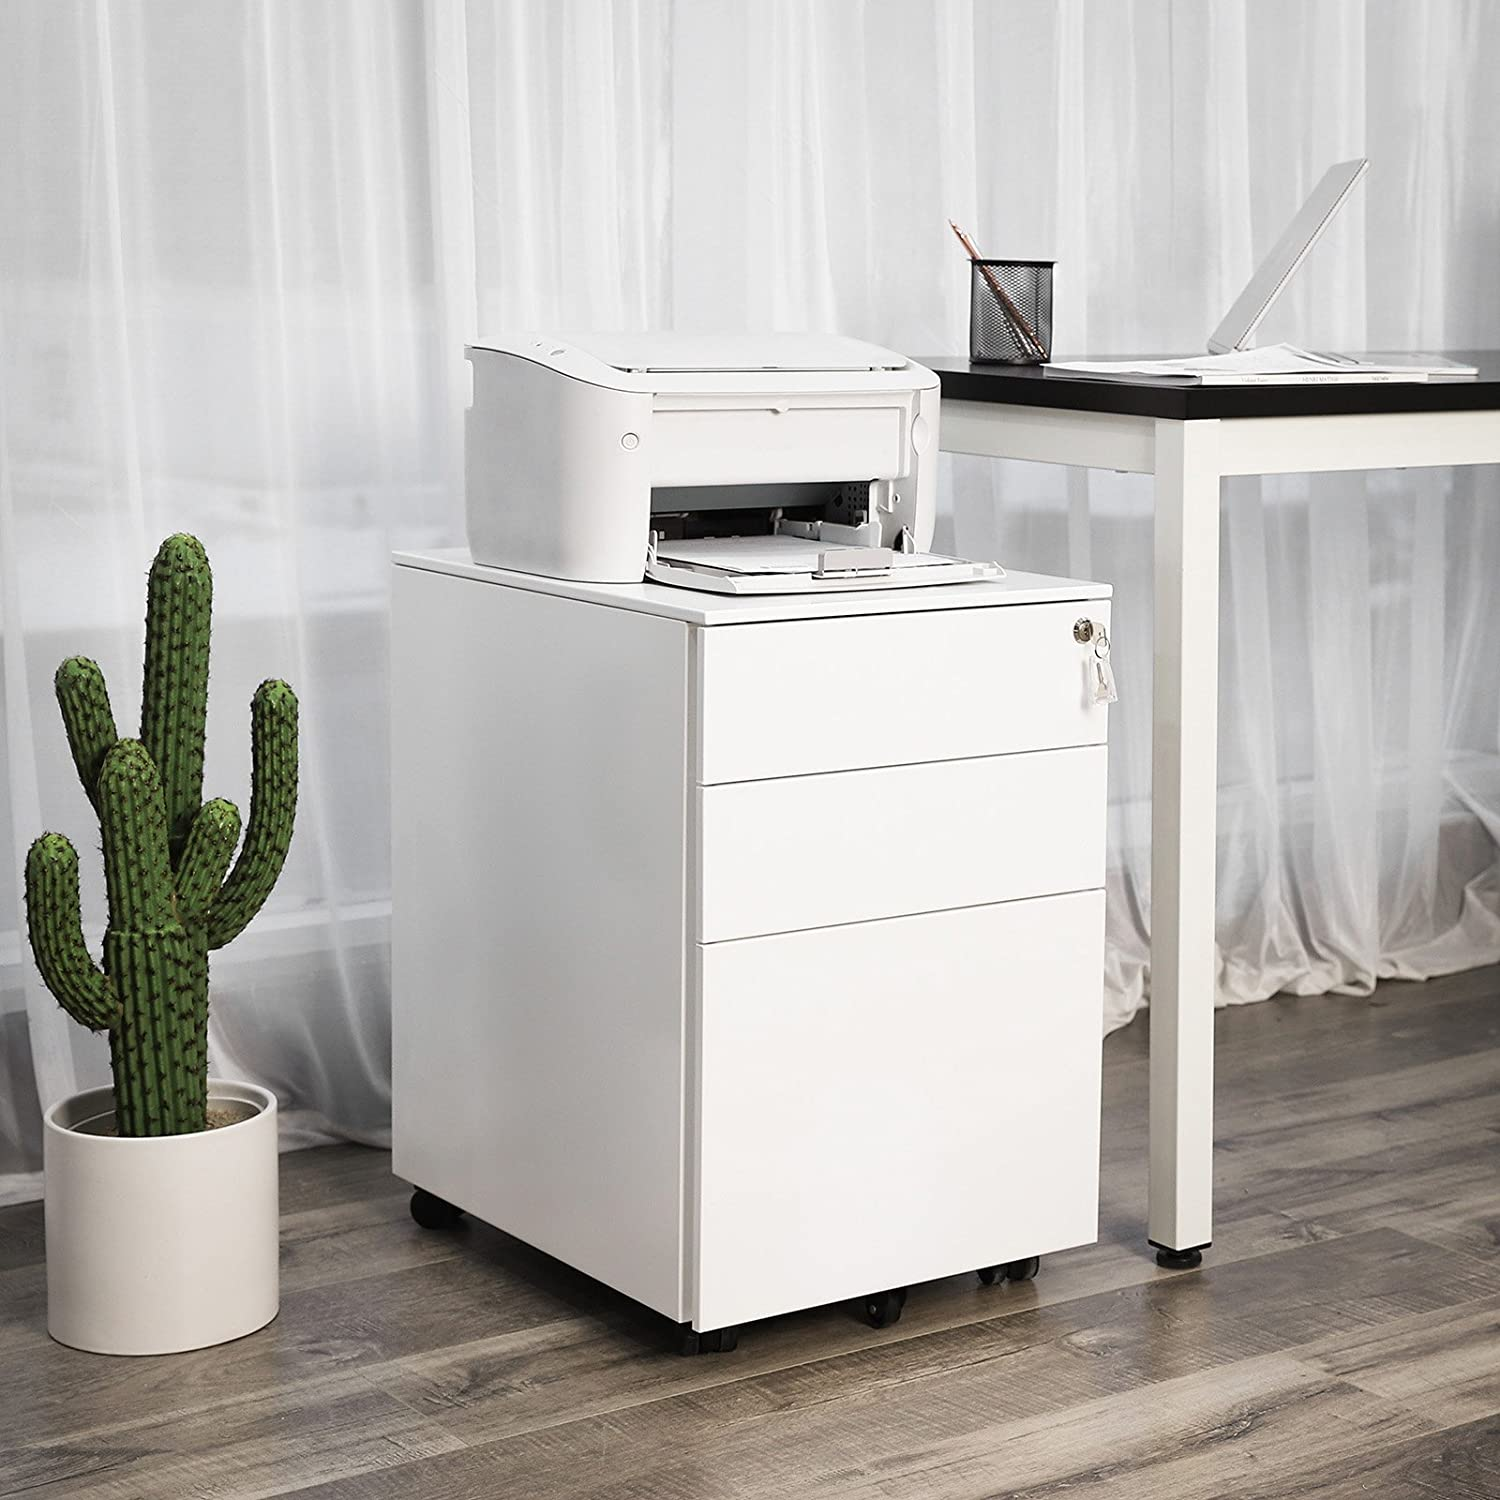 Image of 3 Drawers 5 Wheels Mobile File Cabinet